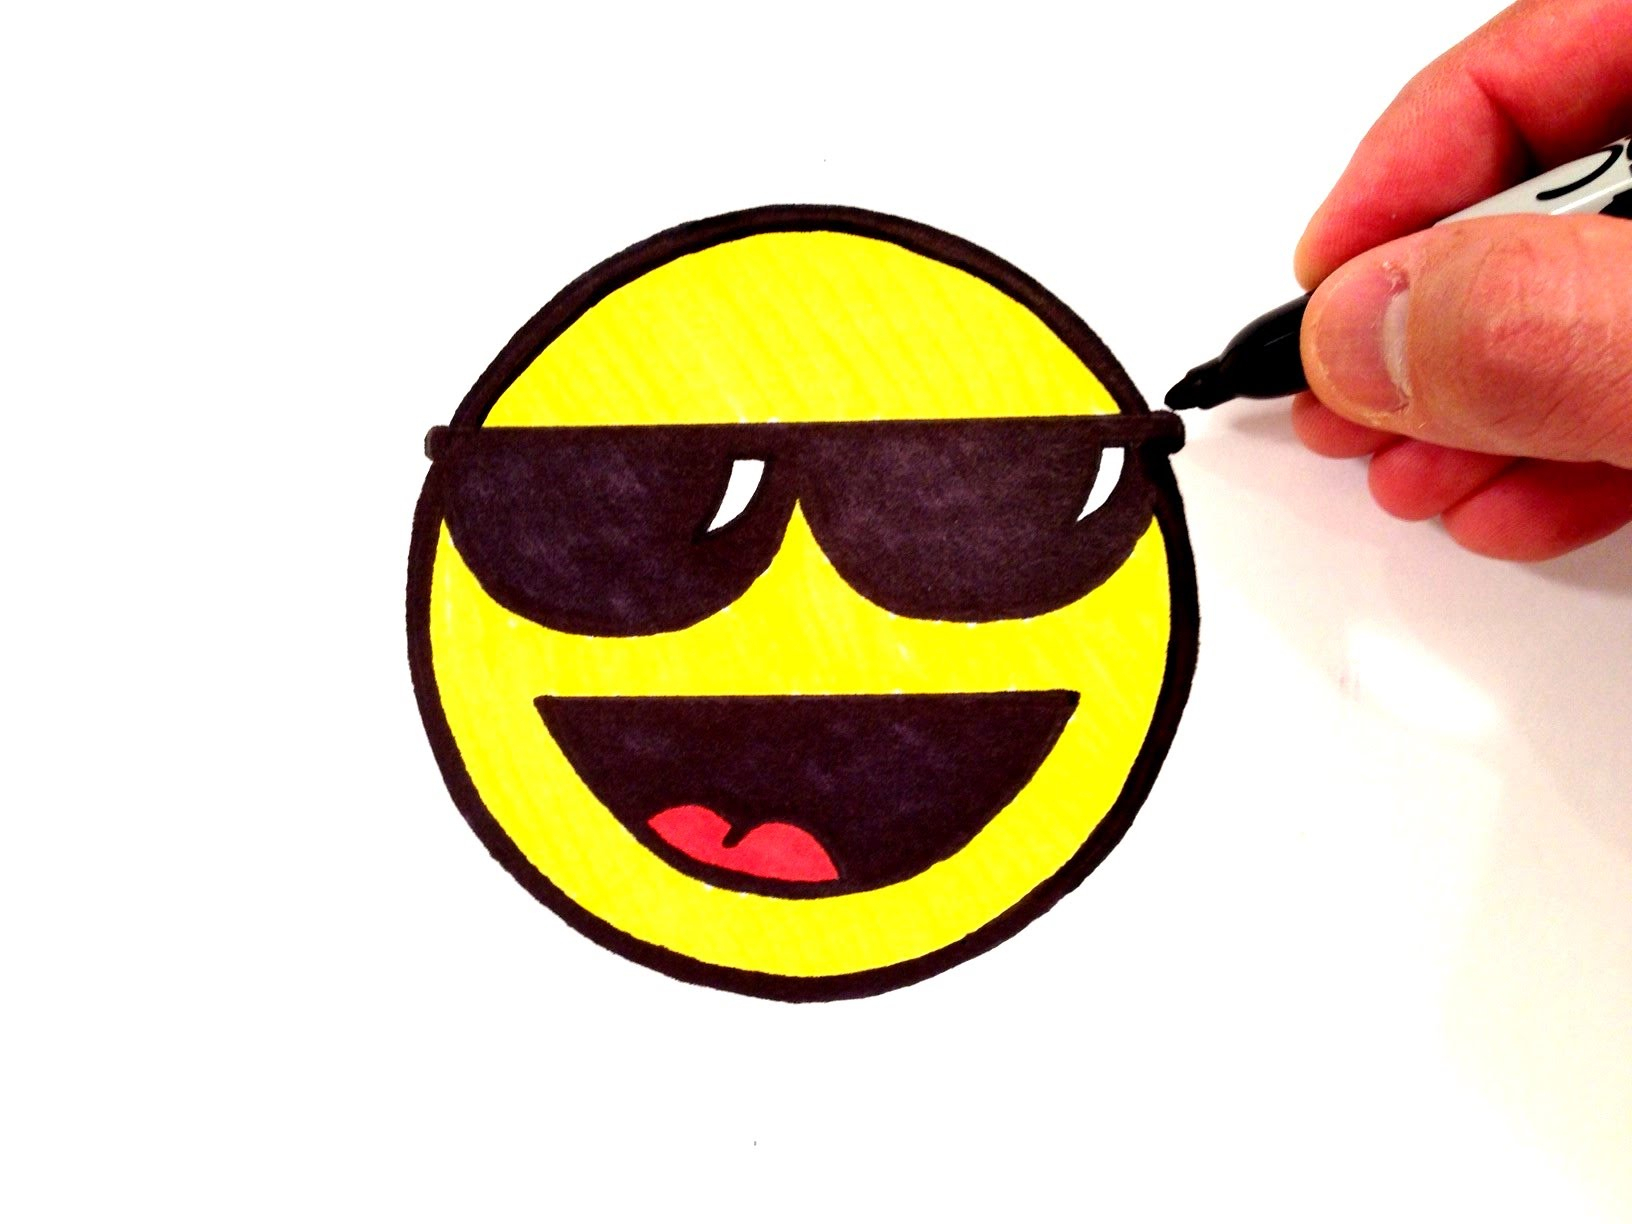 1632x1224 Smiley Face Drawing How To Draw A Cool Smiley Face With Sunglasses